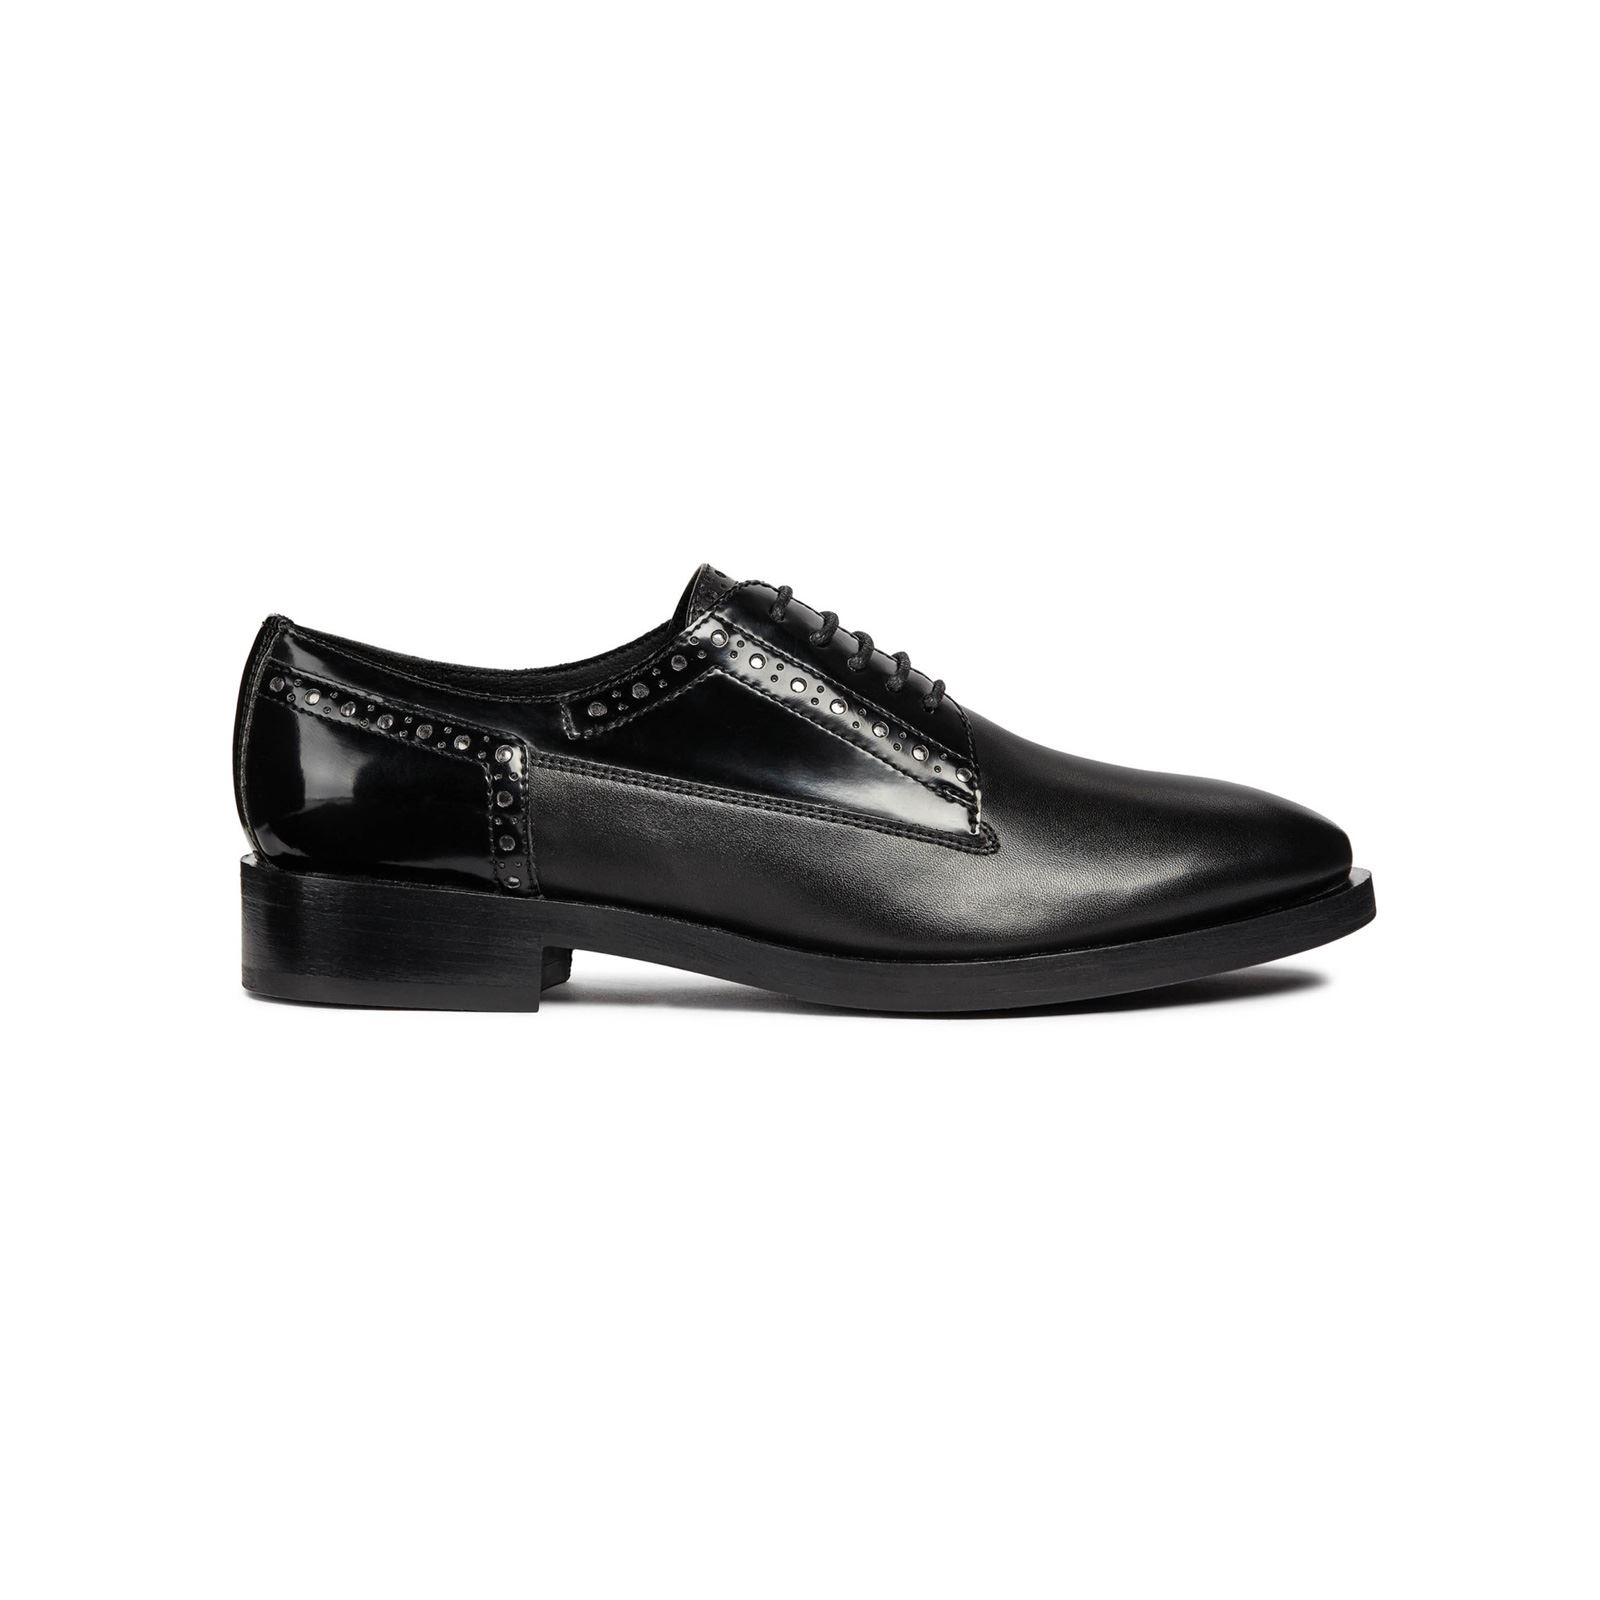 Brandalley B Noir Brague Donna Derbies Geox waX1qPxa